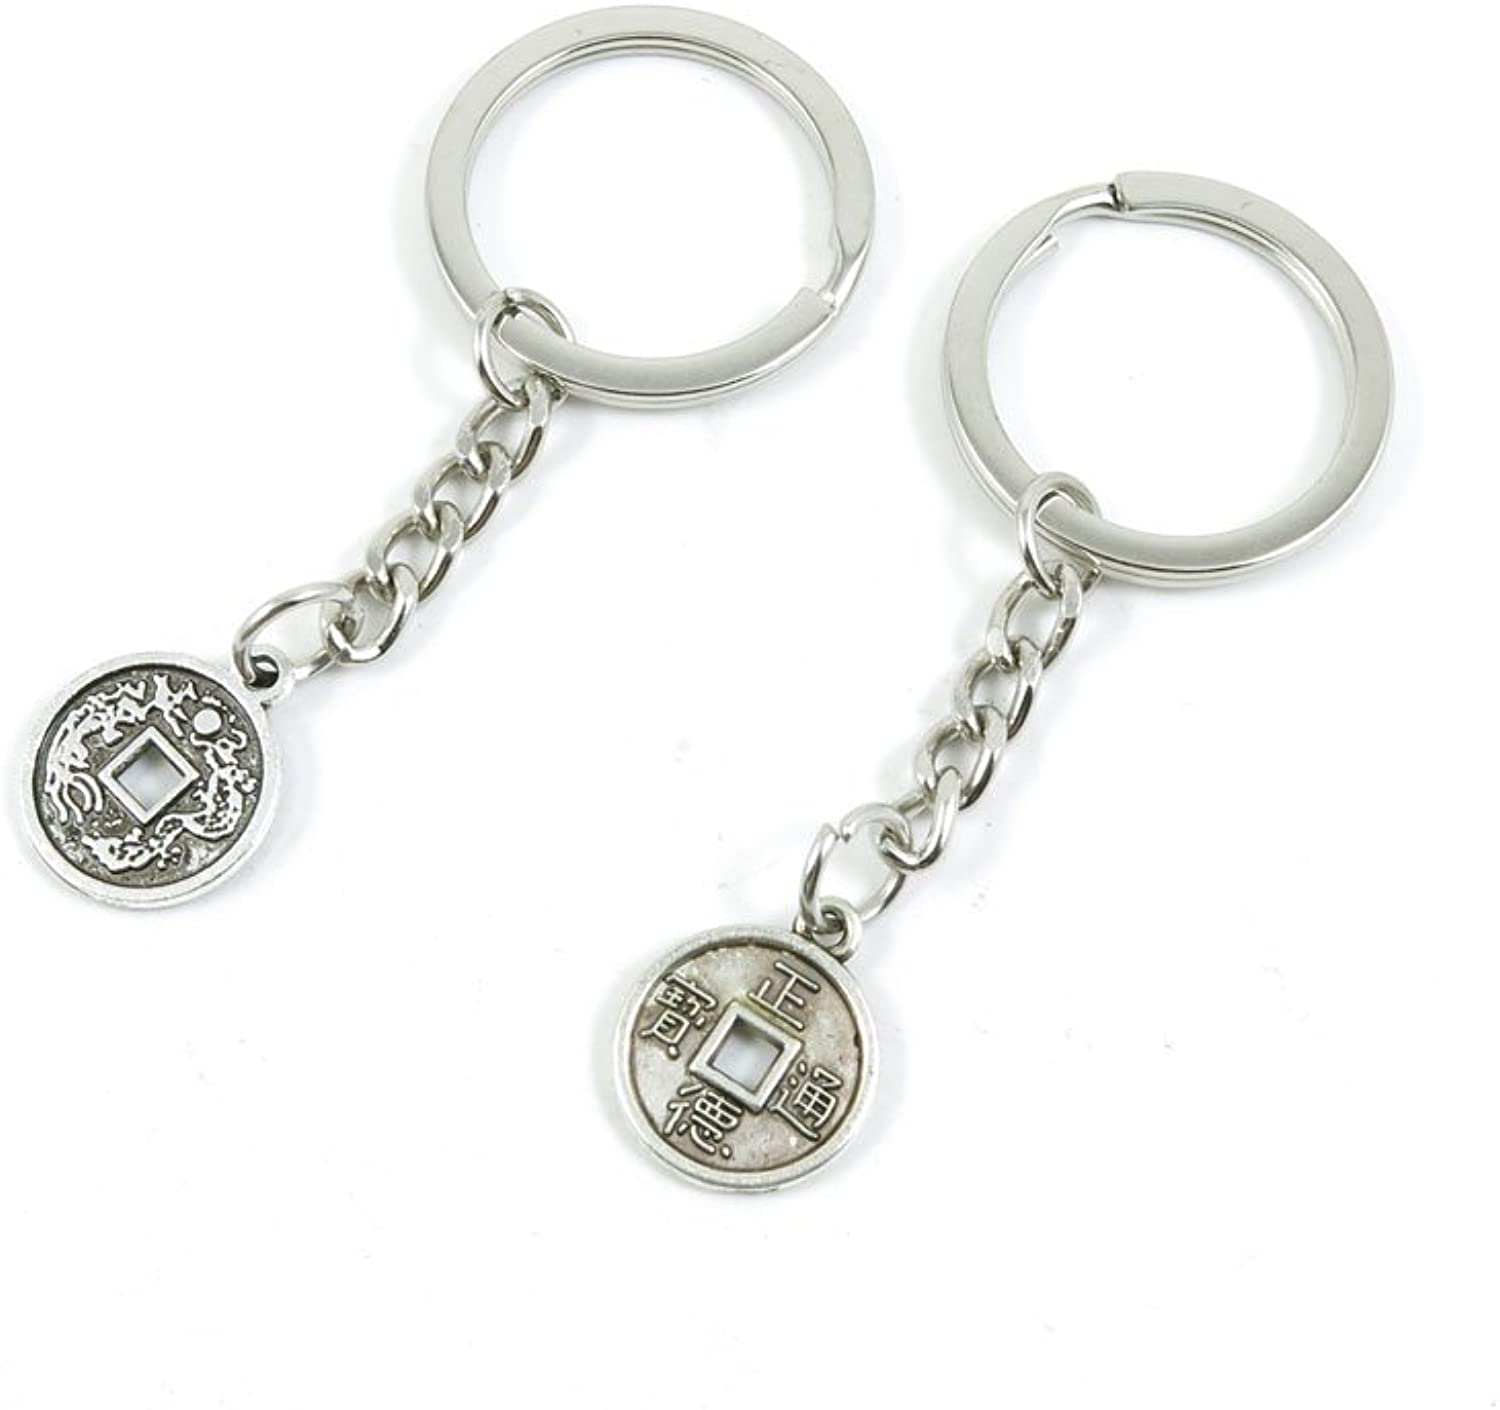 230 Pieces Fashion Jewelry Keyring Keychain Door Car Key Tag Ring Chain Supplier Supply Wholesale Bulk Lots L5HO4 Cash Coins